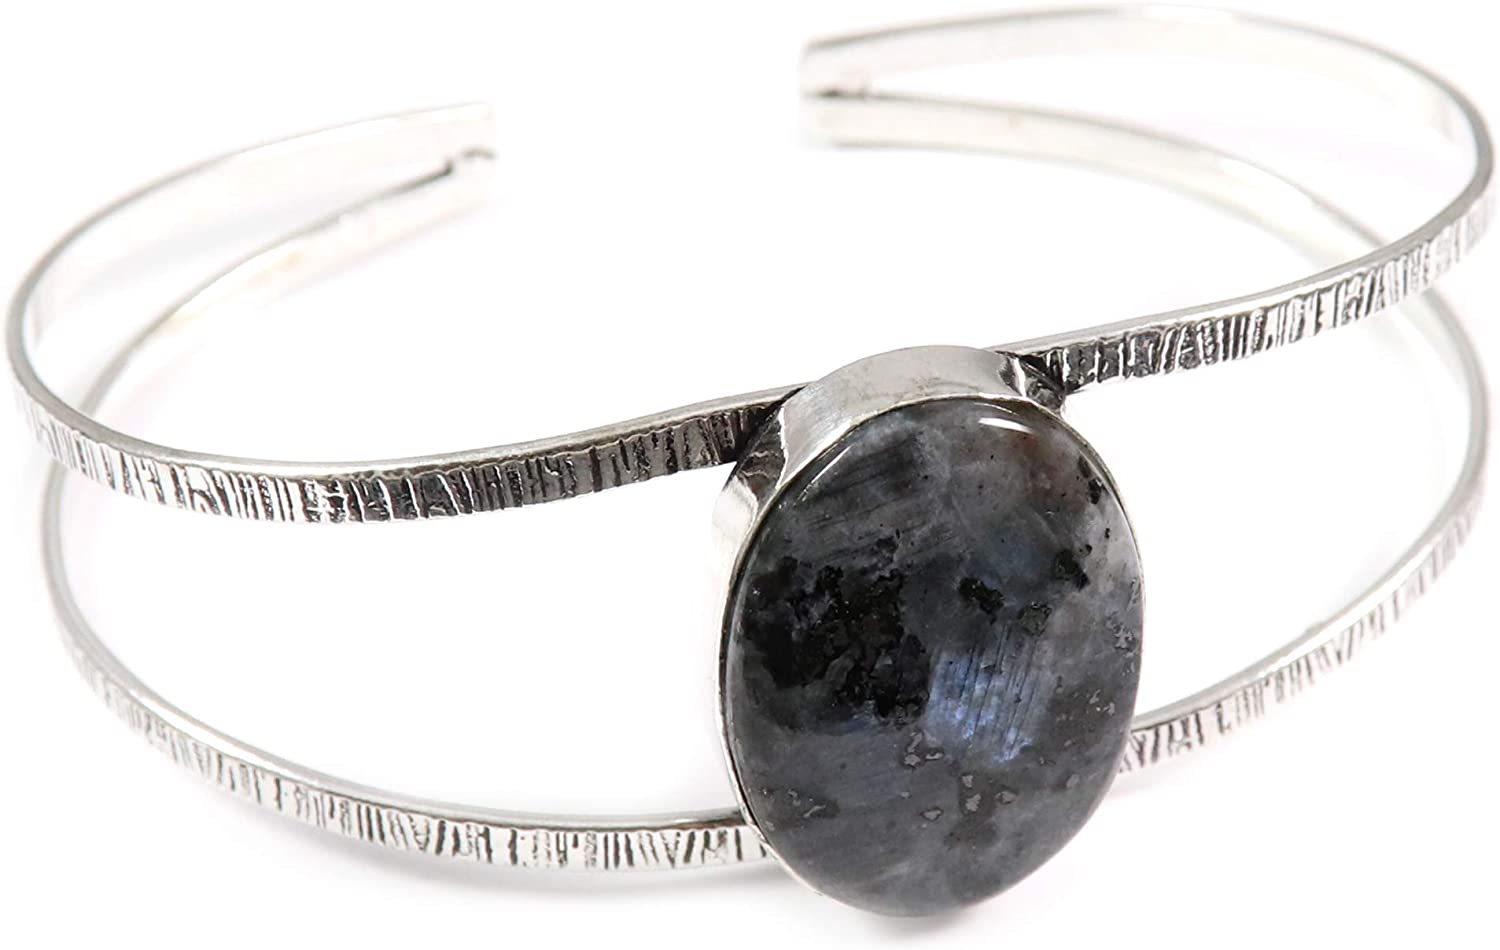 GoyalCrafts Spring Max 46% OFF new work Larvikite Moonstone Cuff Silver Jewe Plated Bracelet